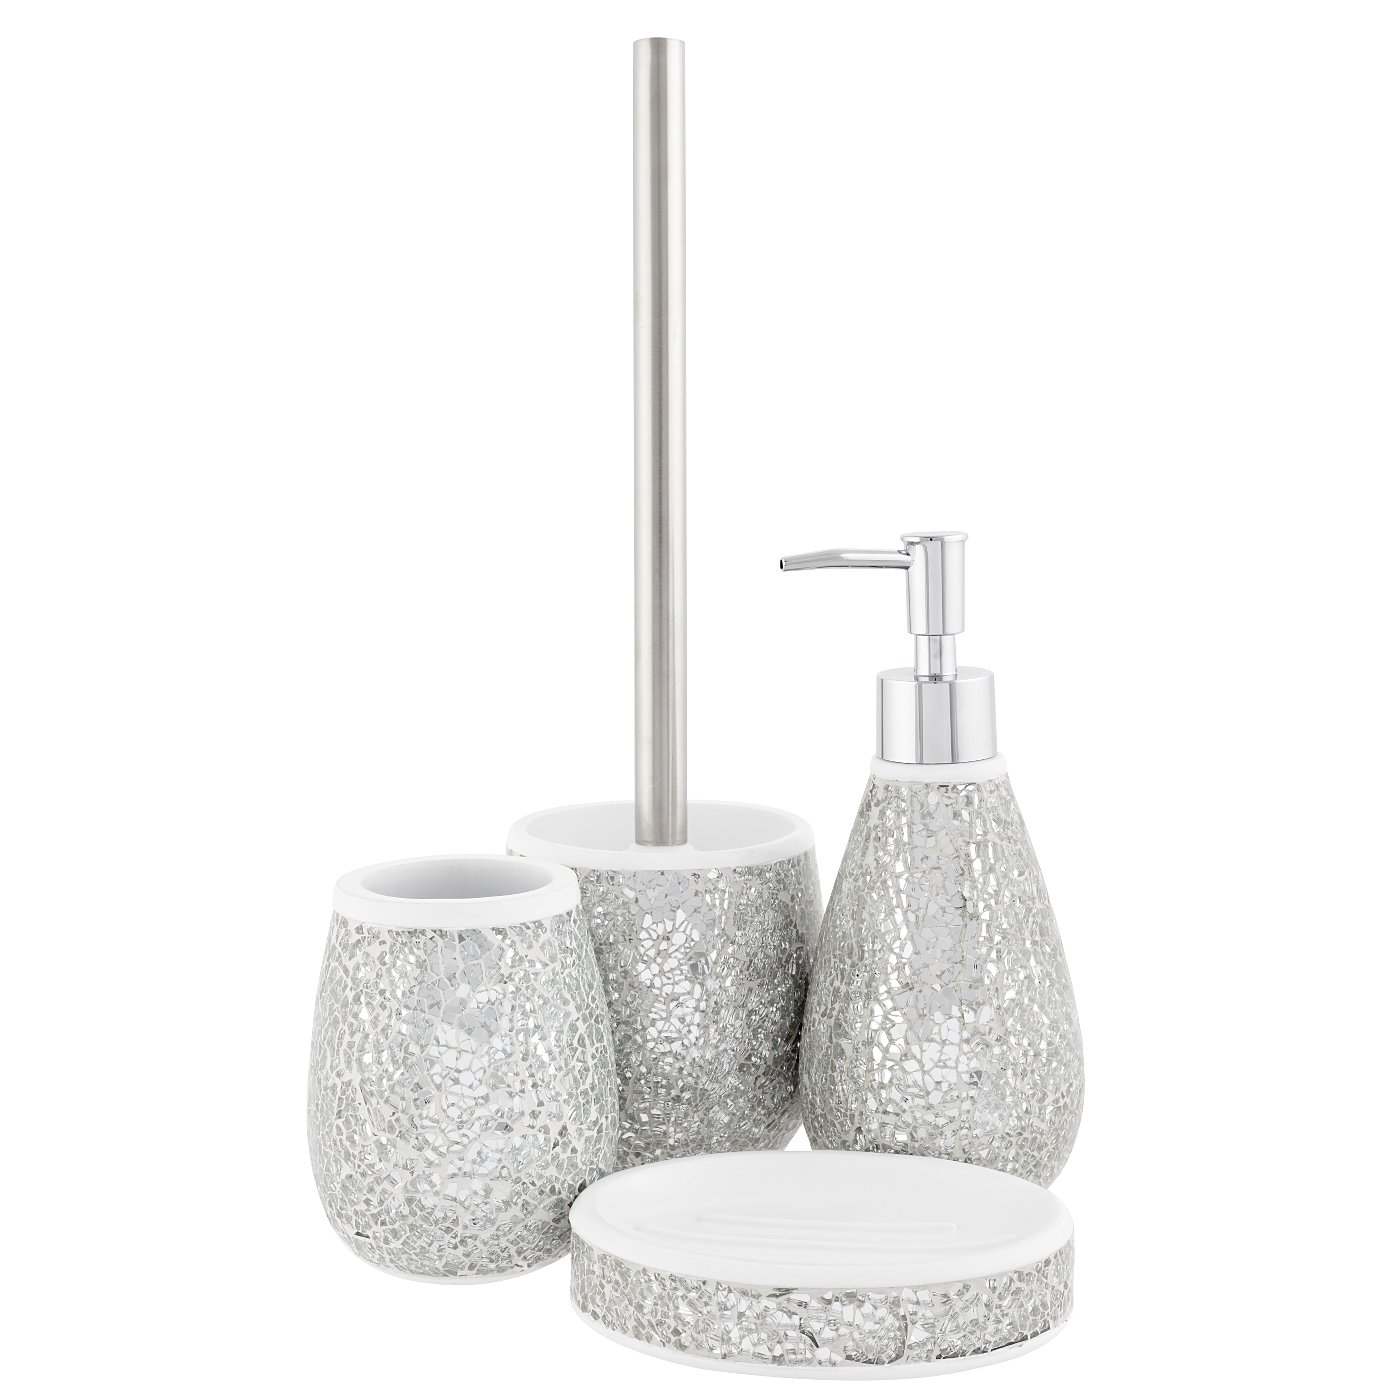 black glitter bathroom accessories. Cracked Silver Glass Bath Accessories Range  Loading zoom Bathroom